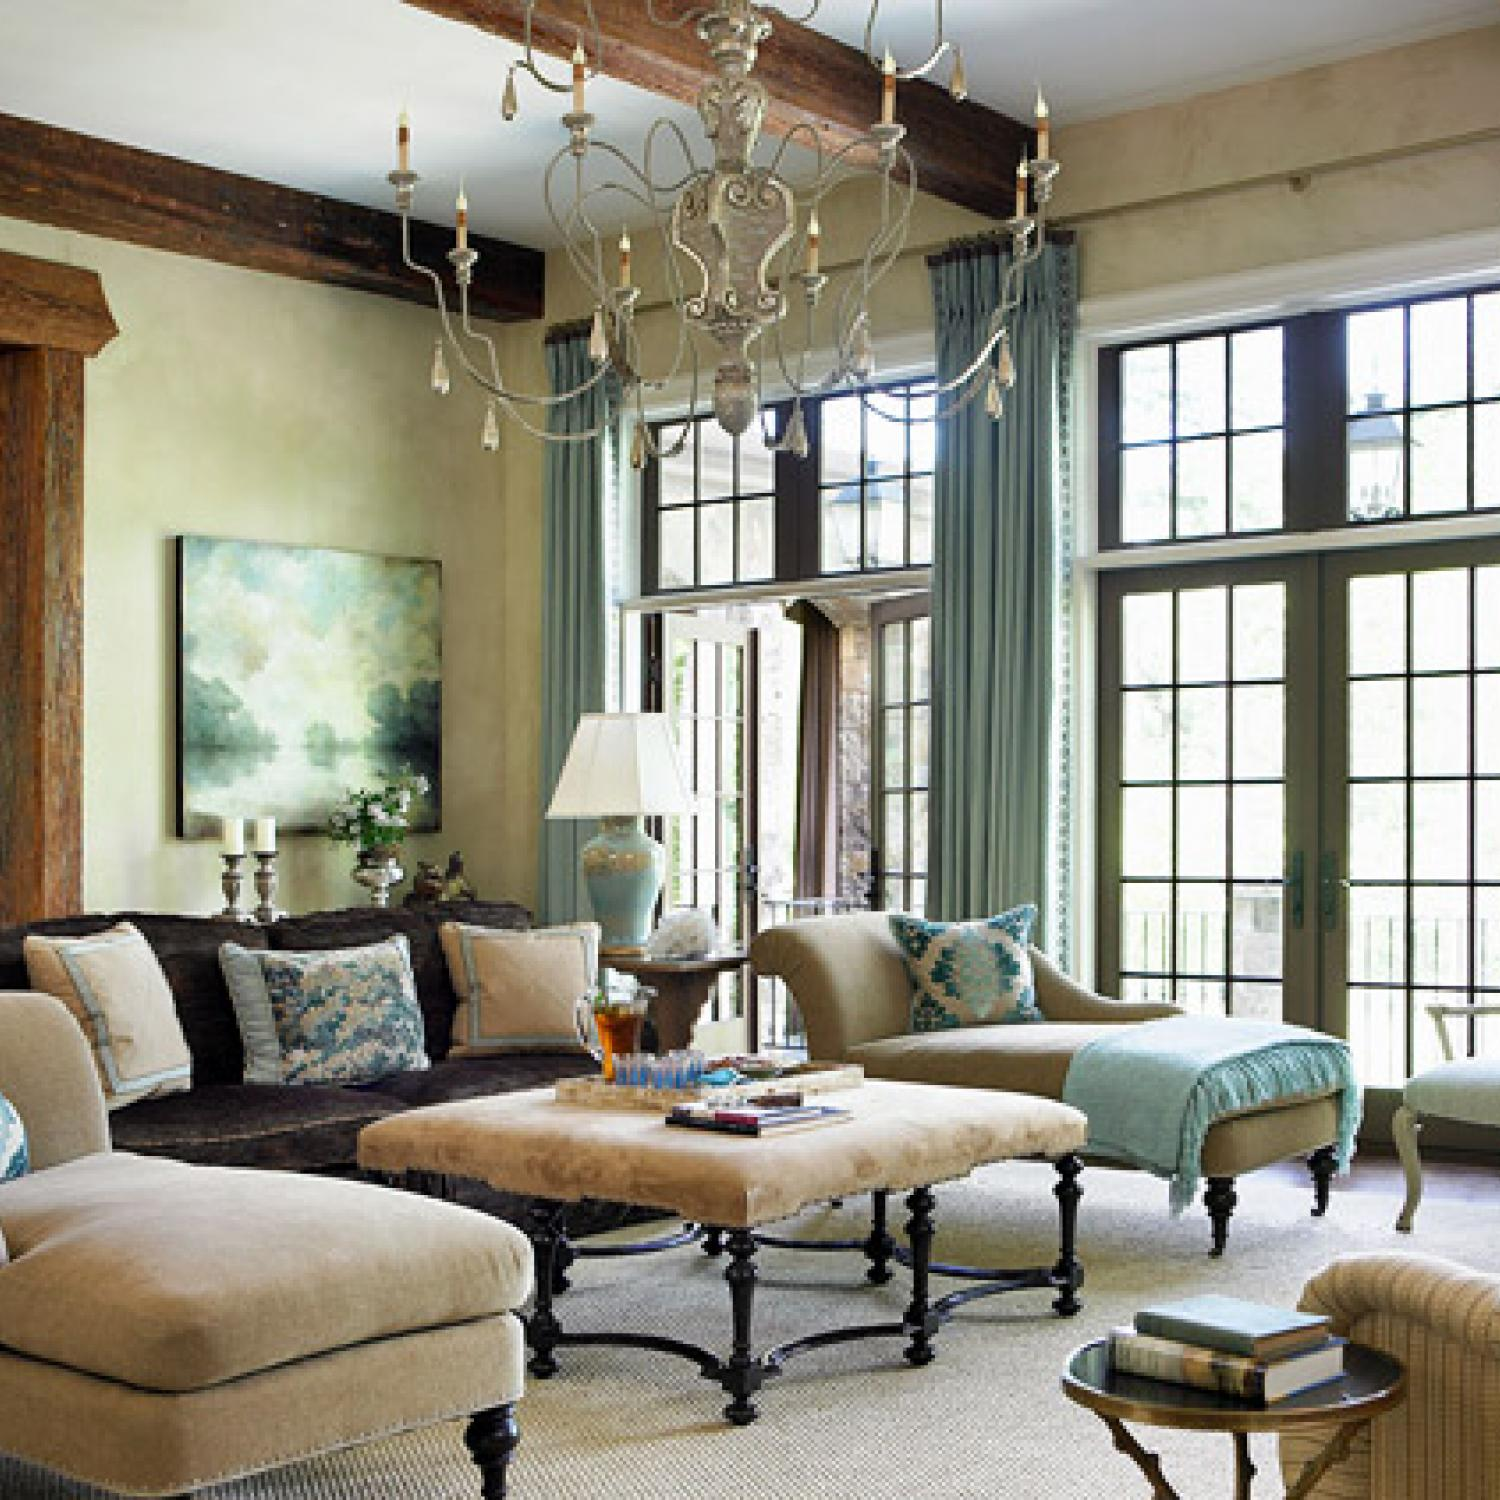 Traditional Home Interiors: Elegant And Family-Friendly Atlanta Home